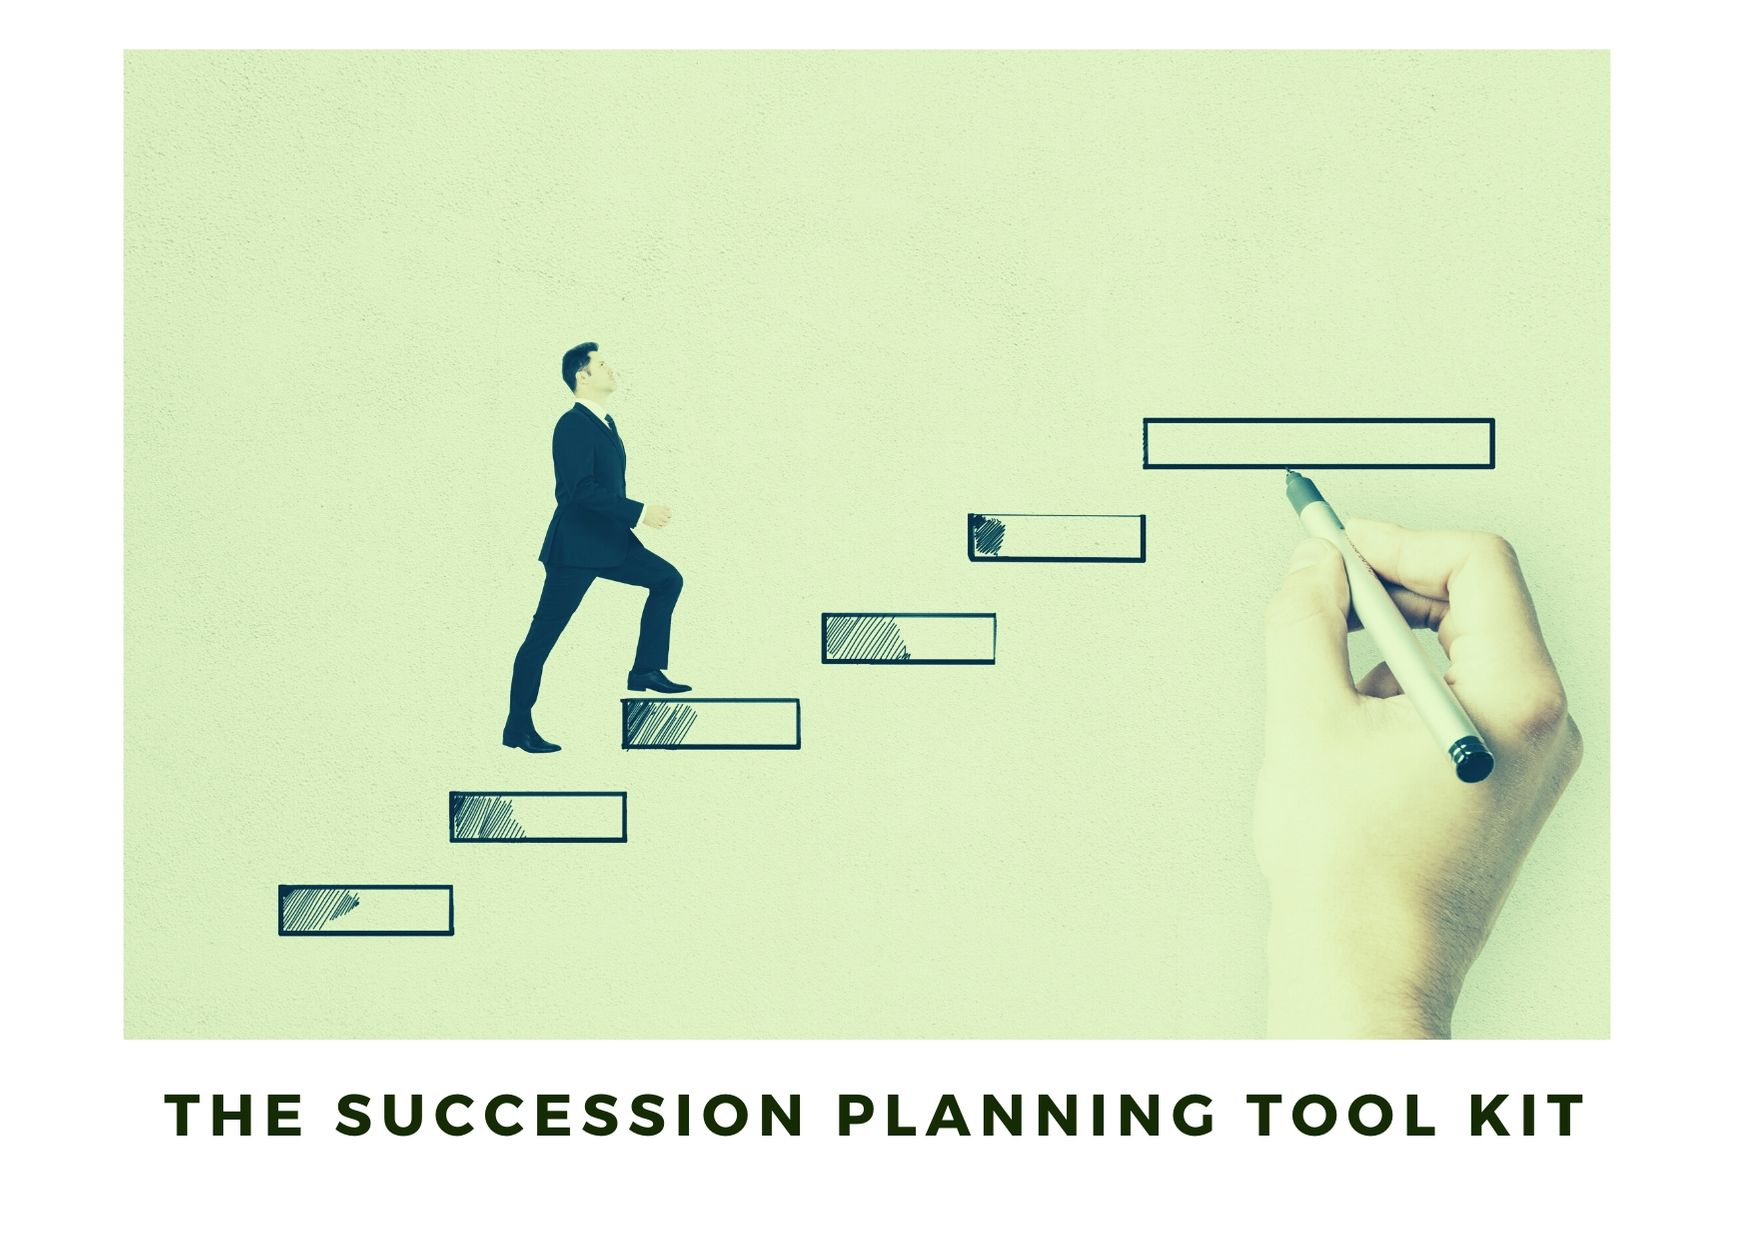 The Succession Planning Tool Kit